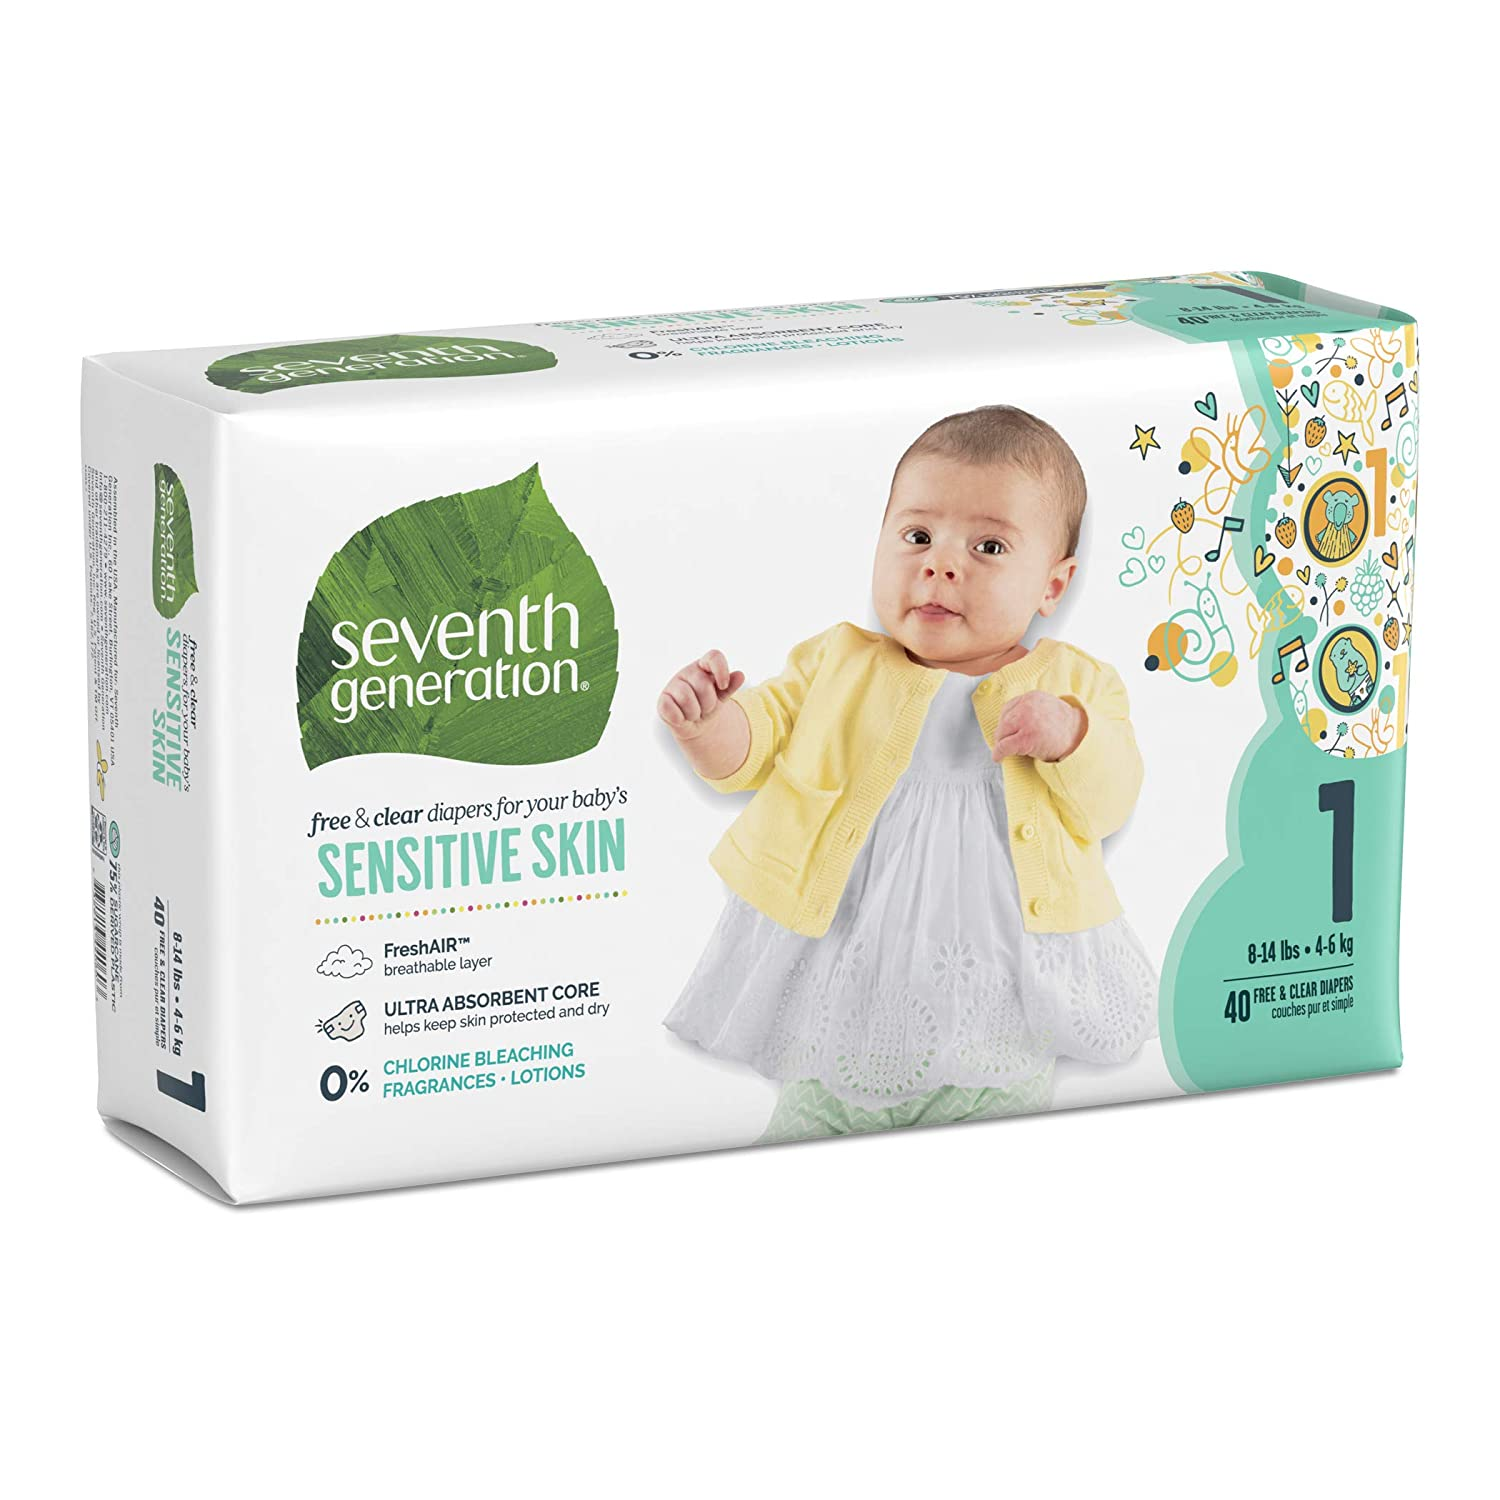 Size 5 92 Count 4 Pack of 23 Seventh Generation Free and Clear Sensitive Skin Baby Diapers with Animal Prints